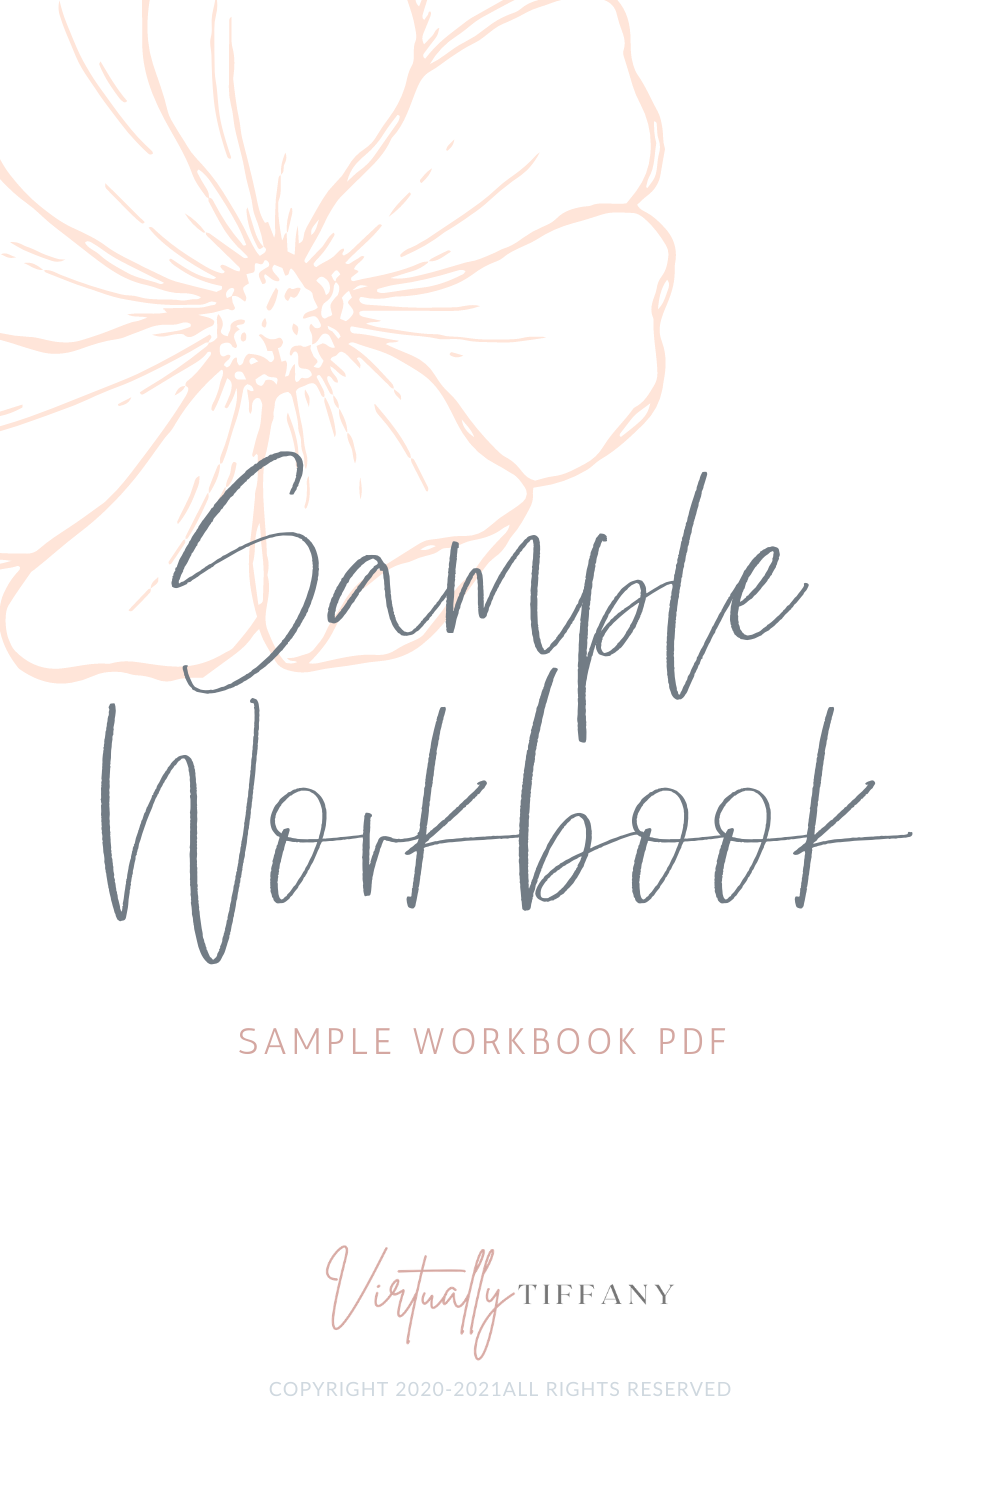 Sample workbook